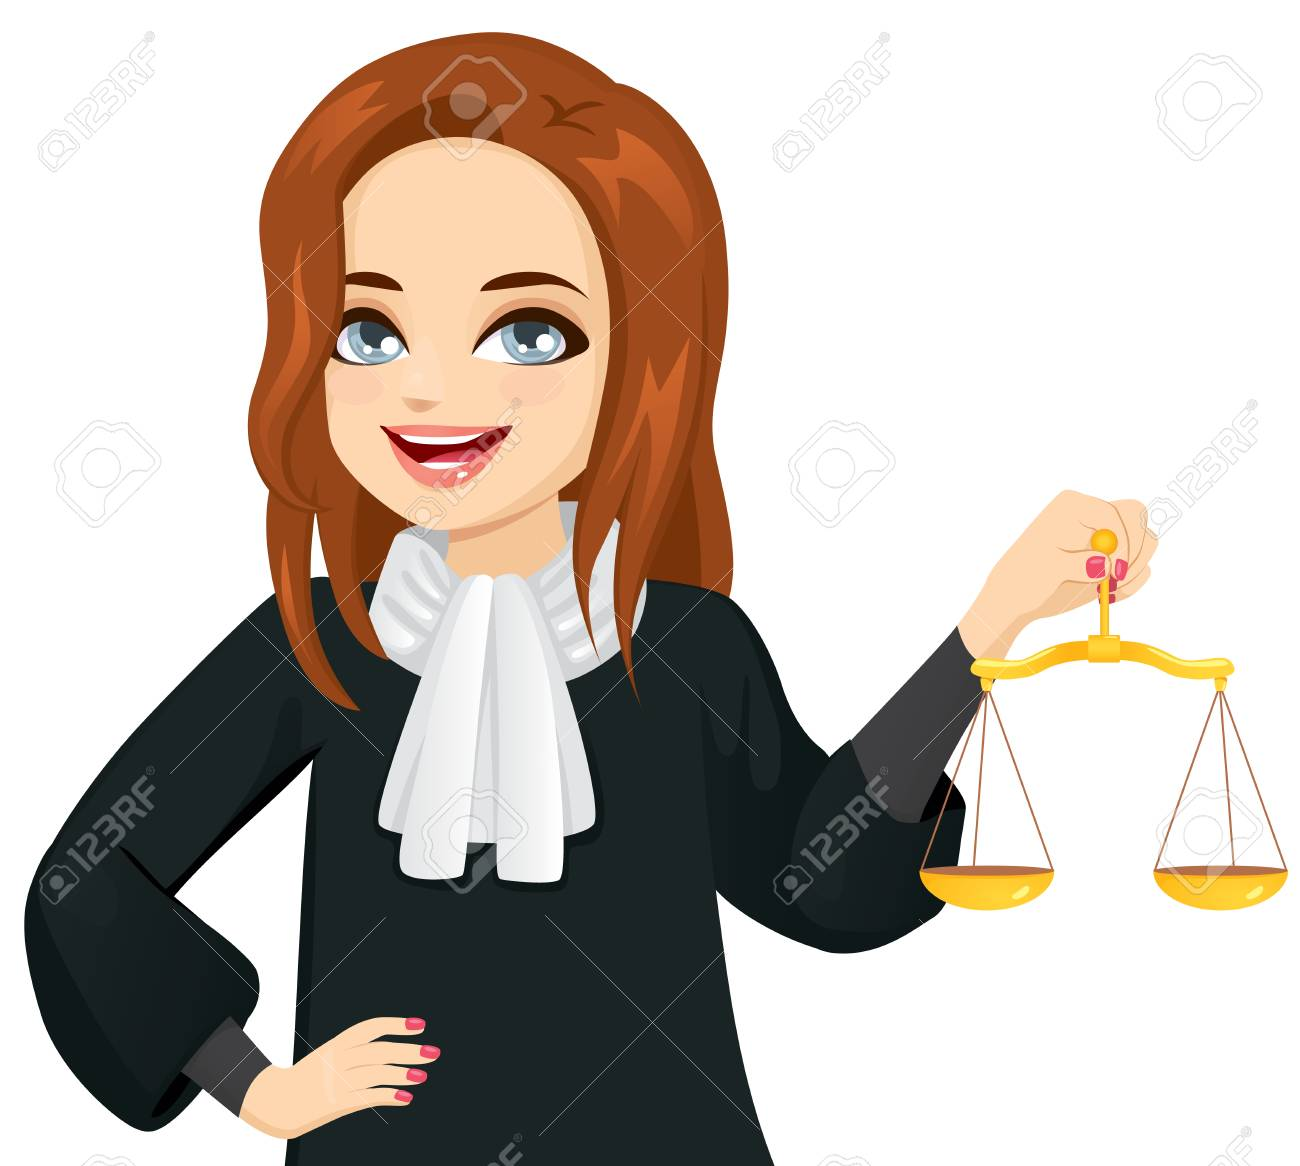 Young female judge holding golden justice scale - 125012626